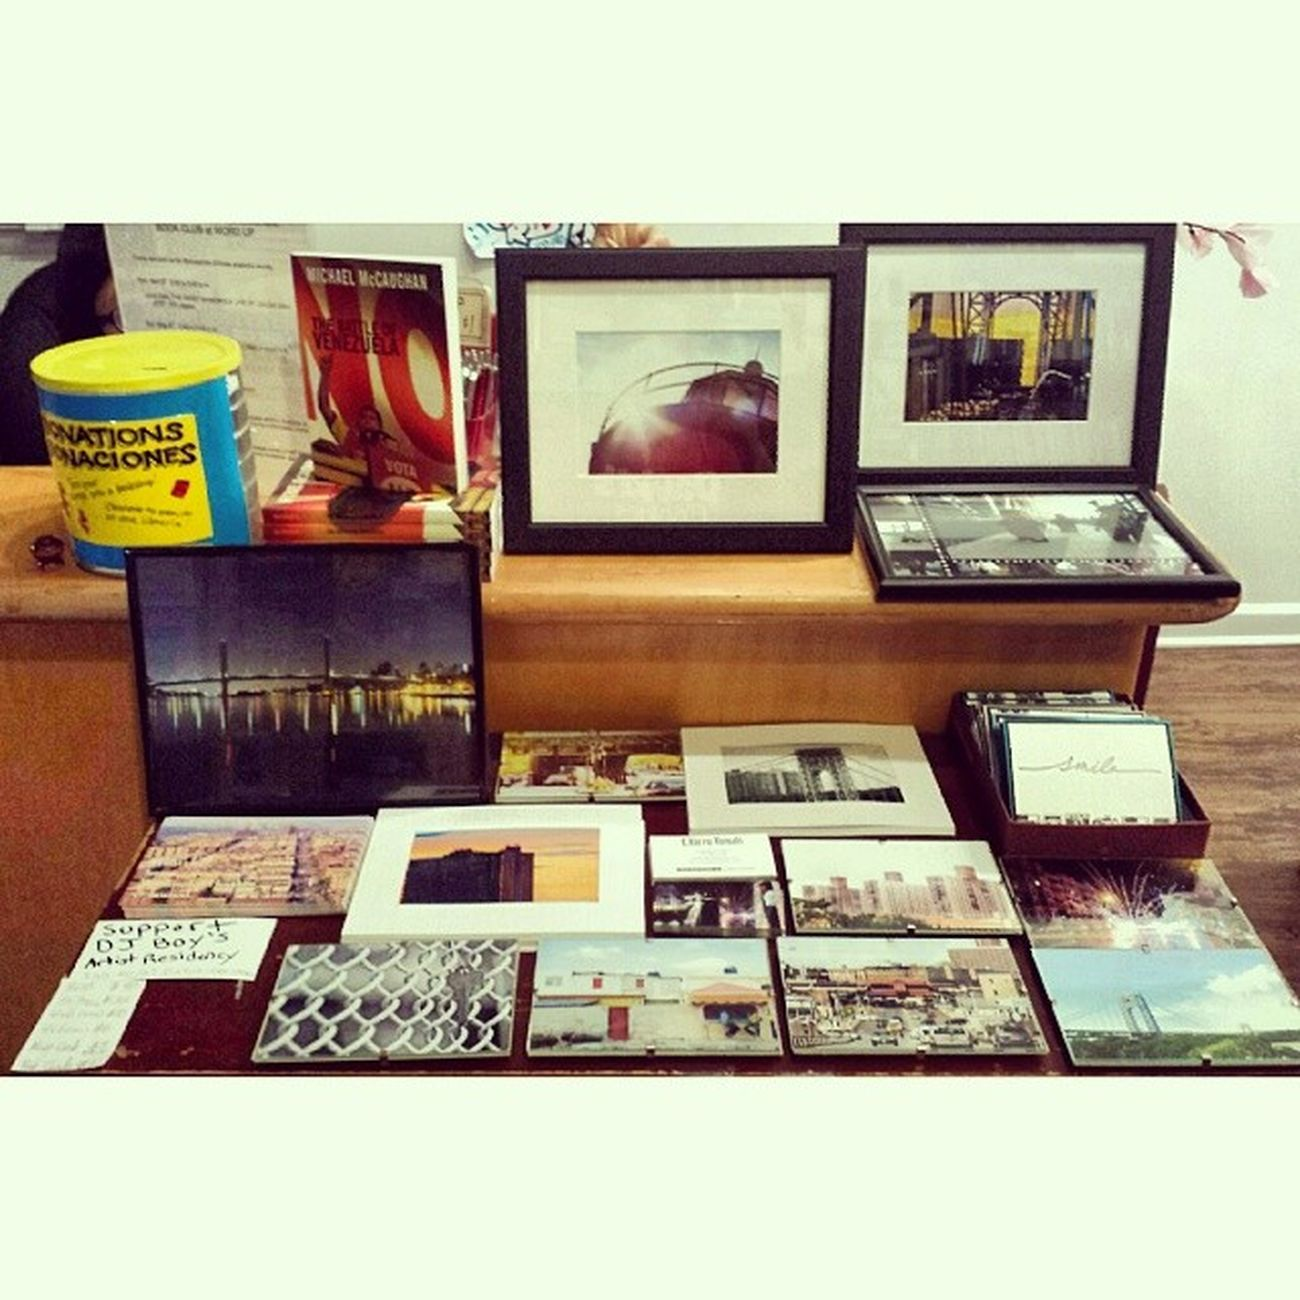 Prints available in various sizes at @wordupbooks 2113 Amsterdam ave at 165th st, Nyc Washingtonheights Washheights Inwood Manhatan uptown instagramuptown prints art photography newyorkcity newyork photography crowdfunding fundraiser @indiegogo indiegogo Www.igg.me/at/eabreudoesmexico